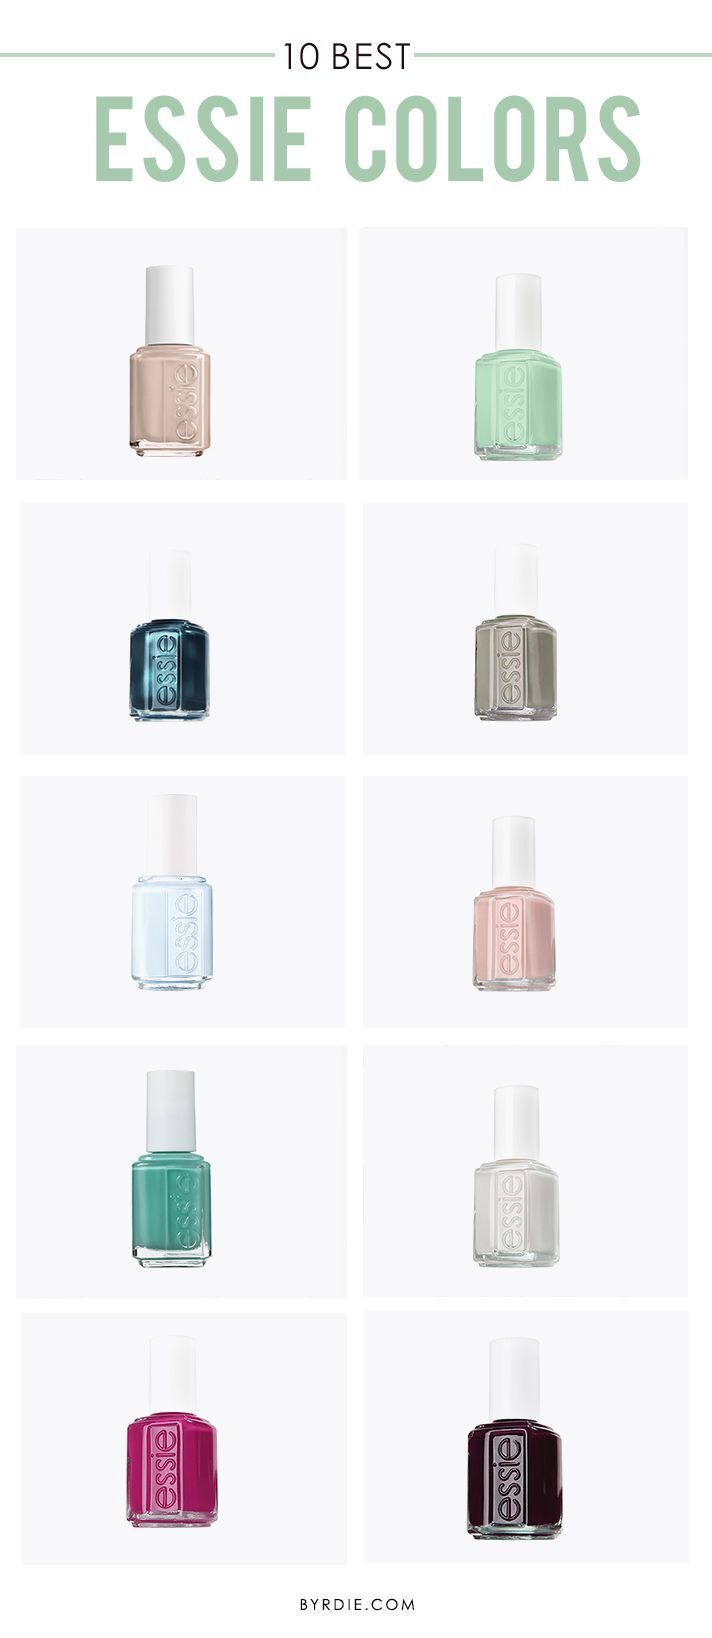 Magnificent 3d Nail Art Designs Pictures Tall Nail Polish Holder Walmart Solid Gel Nail Polish Directions Justice Nail Polish Young Cobalt Blue Nail Polish Orange3d Nail Art Accessories 1000  Images About Hair And Beauty On Pinterest | Revlon, OPI And ..